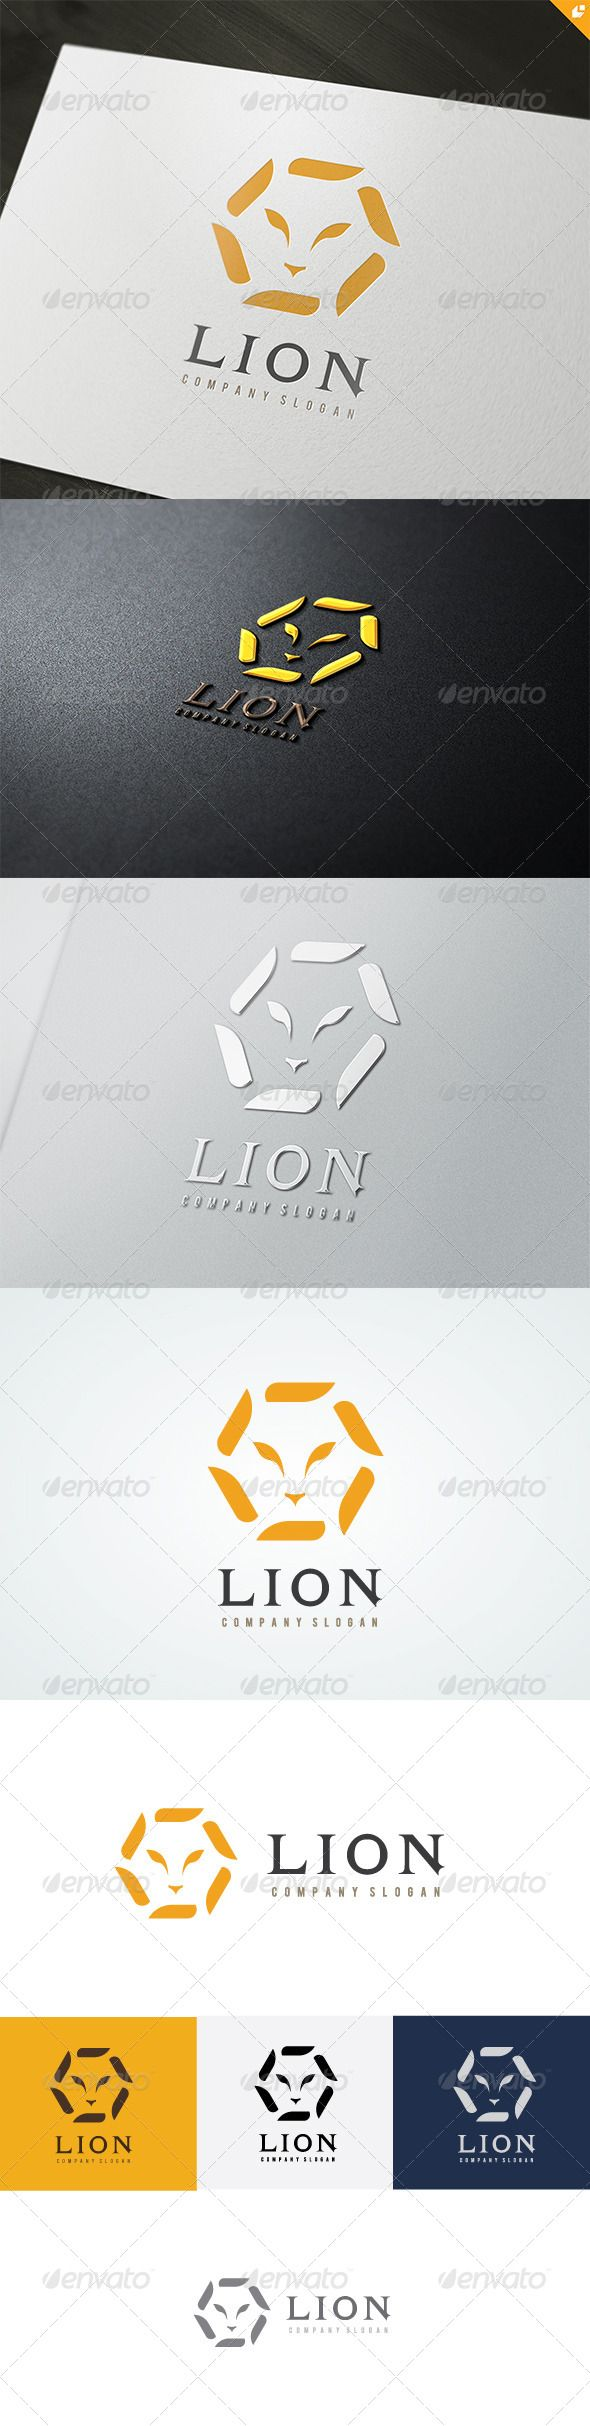 Lion Company Logo — Vector EPS #outdoor #king • Available here → https://graphicriver.net/item/lion-company-logo/4723423?ref=pxcr